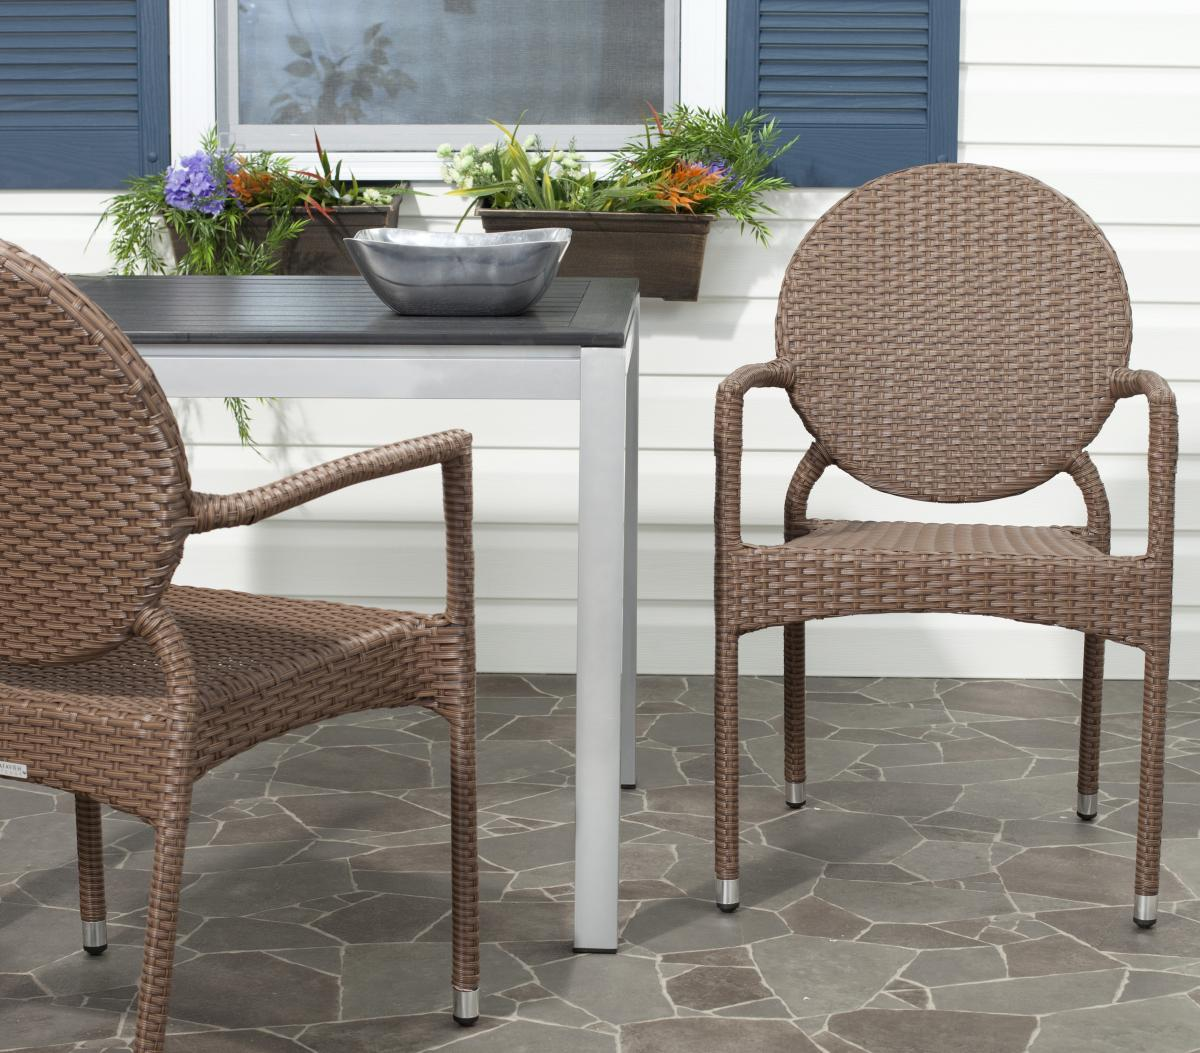 Safavieh Valdez Indoor-Outdoor French Bistro Stacking Side Chair Set of 2 - Brown (FOX5205A-SET2). Indoor and outdoor guest seating